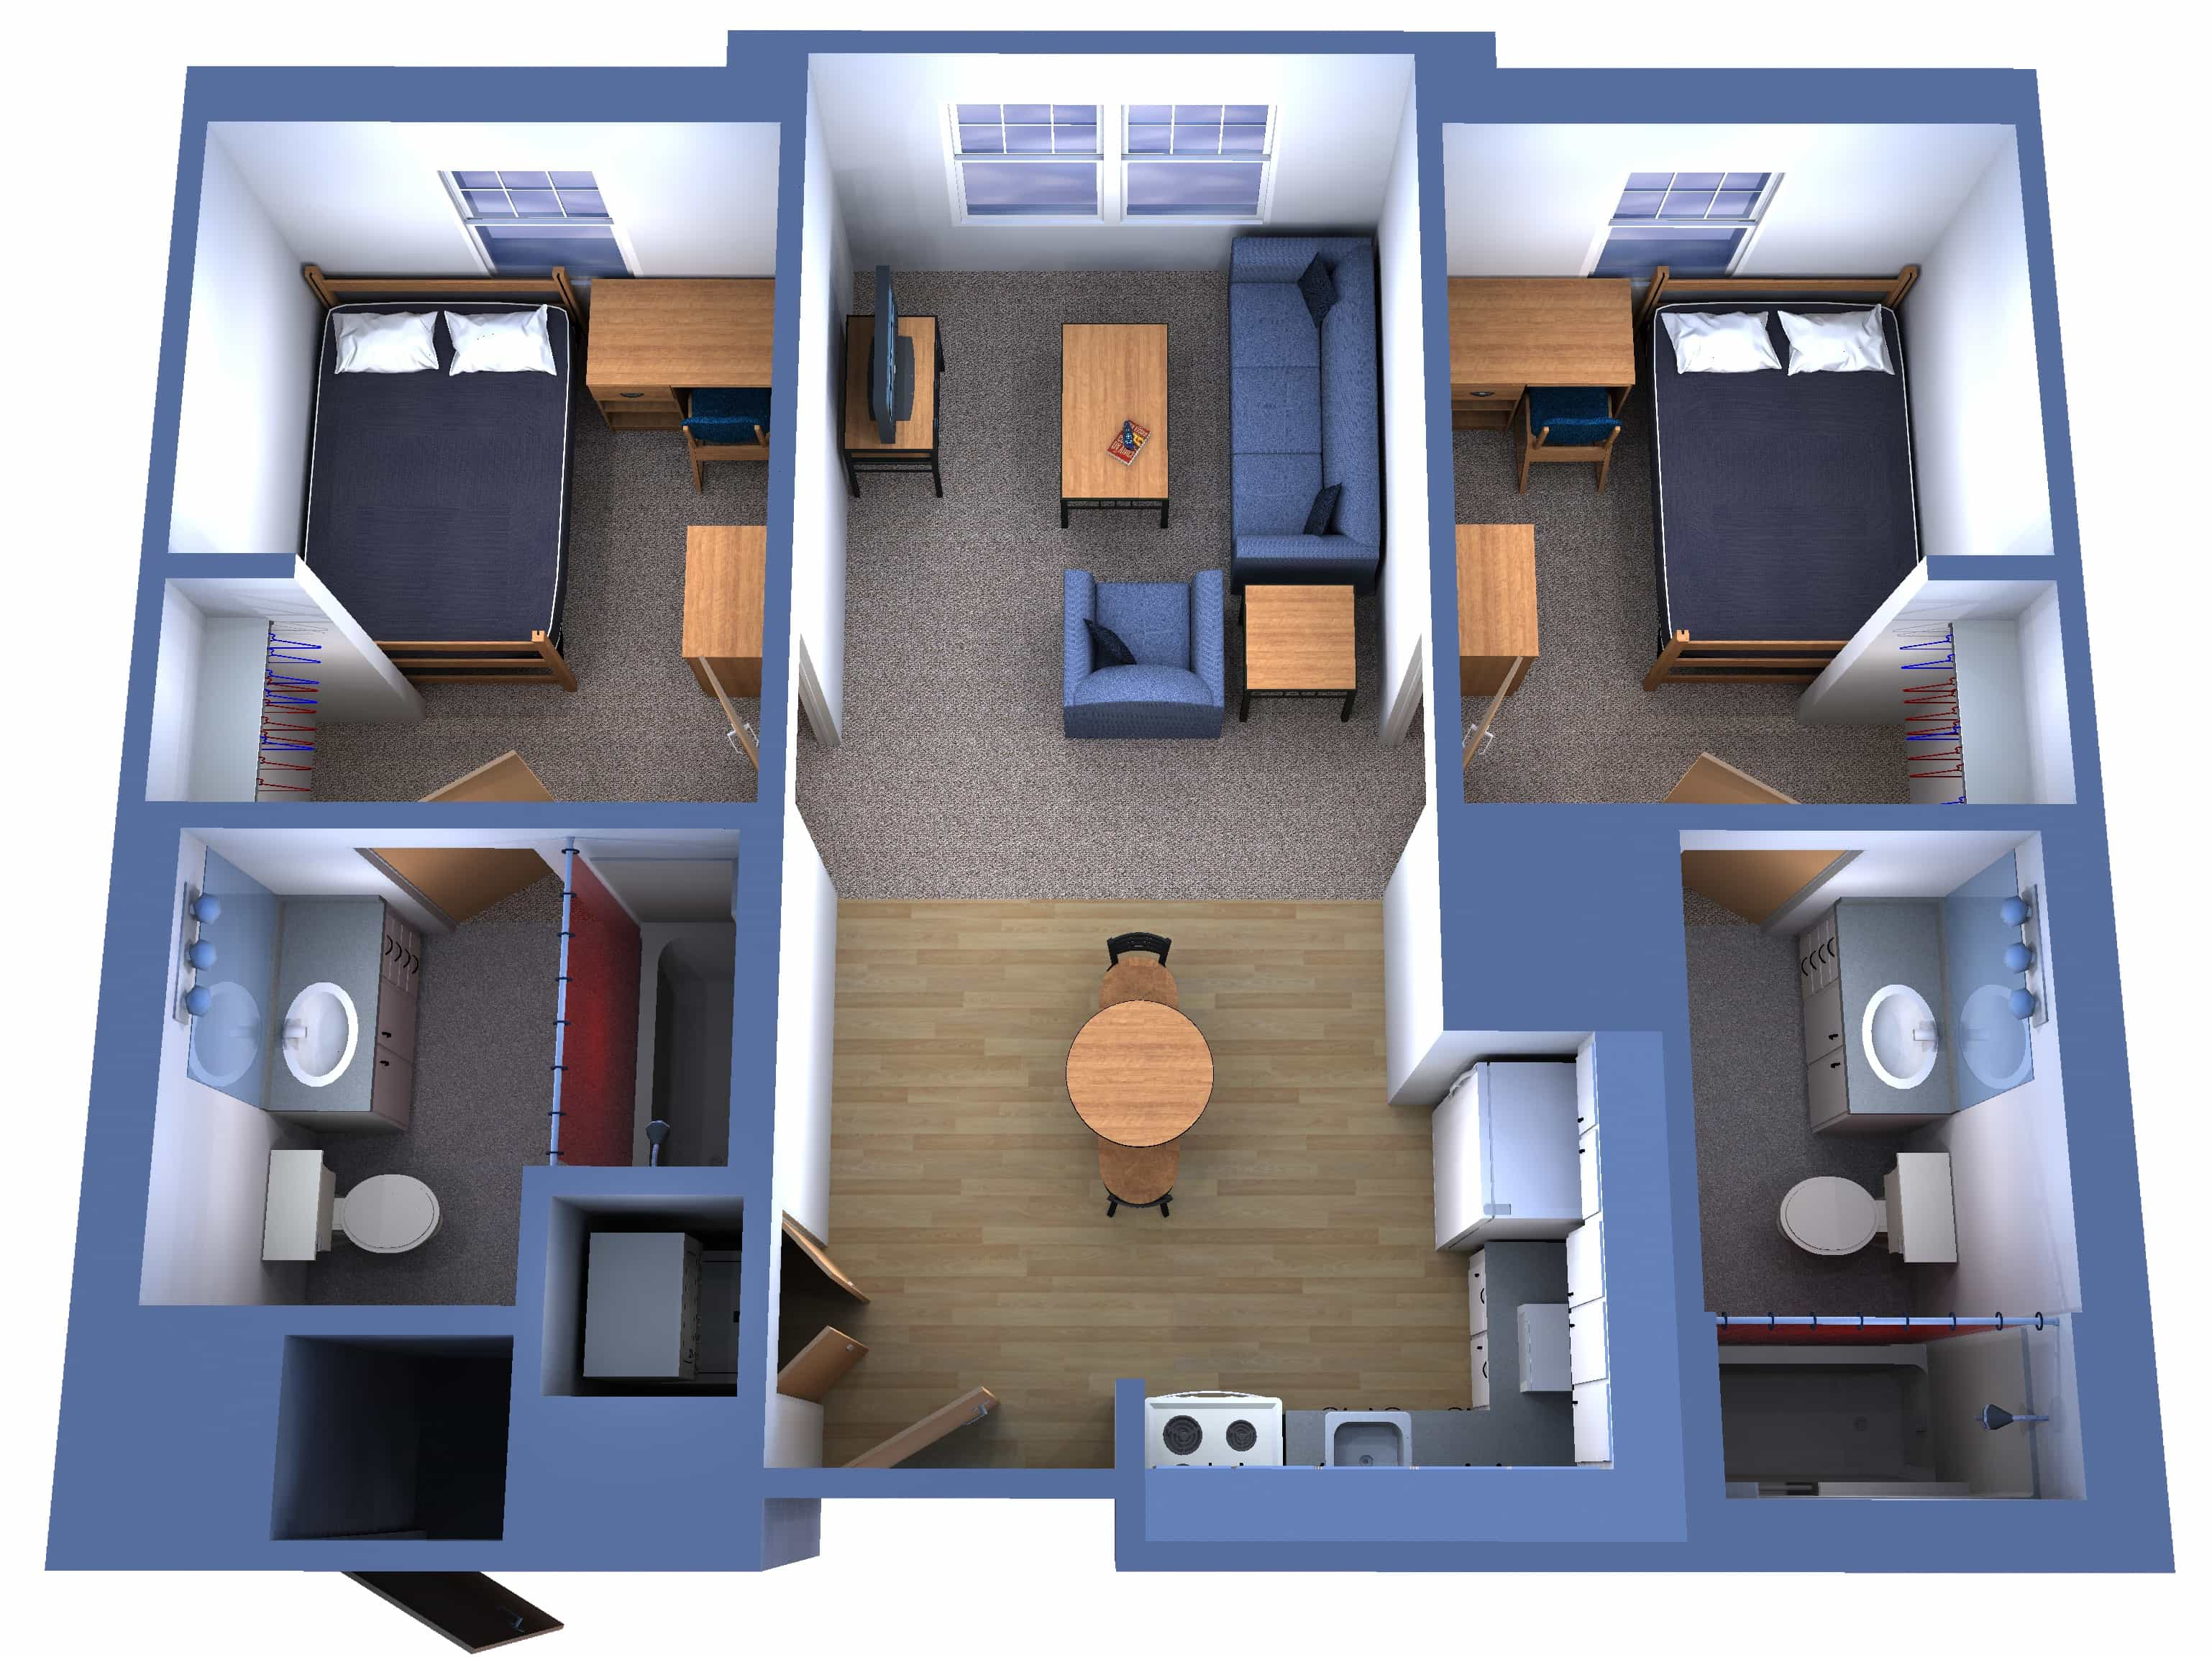 3D House Floor Plan For South Facing Plot With Two Bedrooms And 2 Bathrooms (Image 6 of 17)